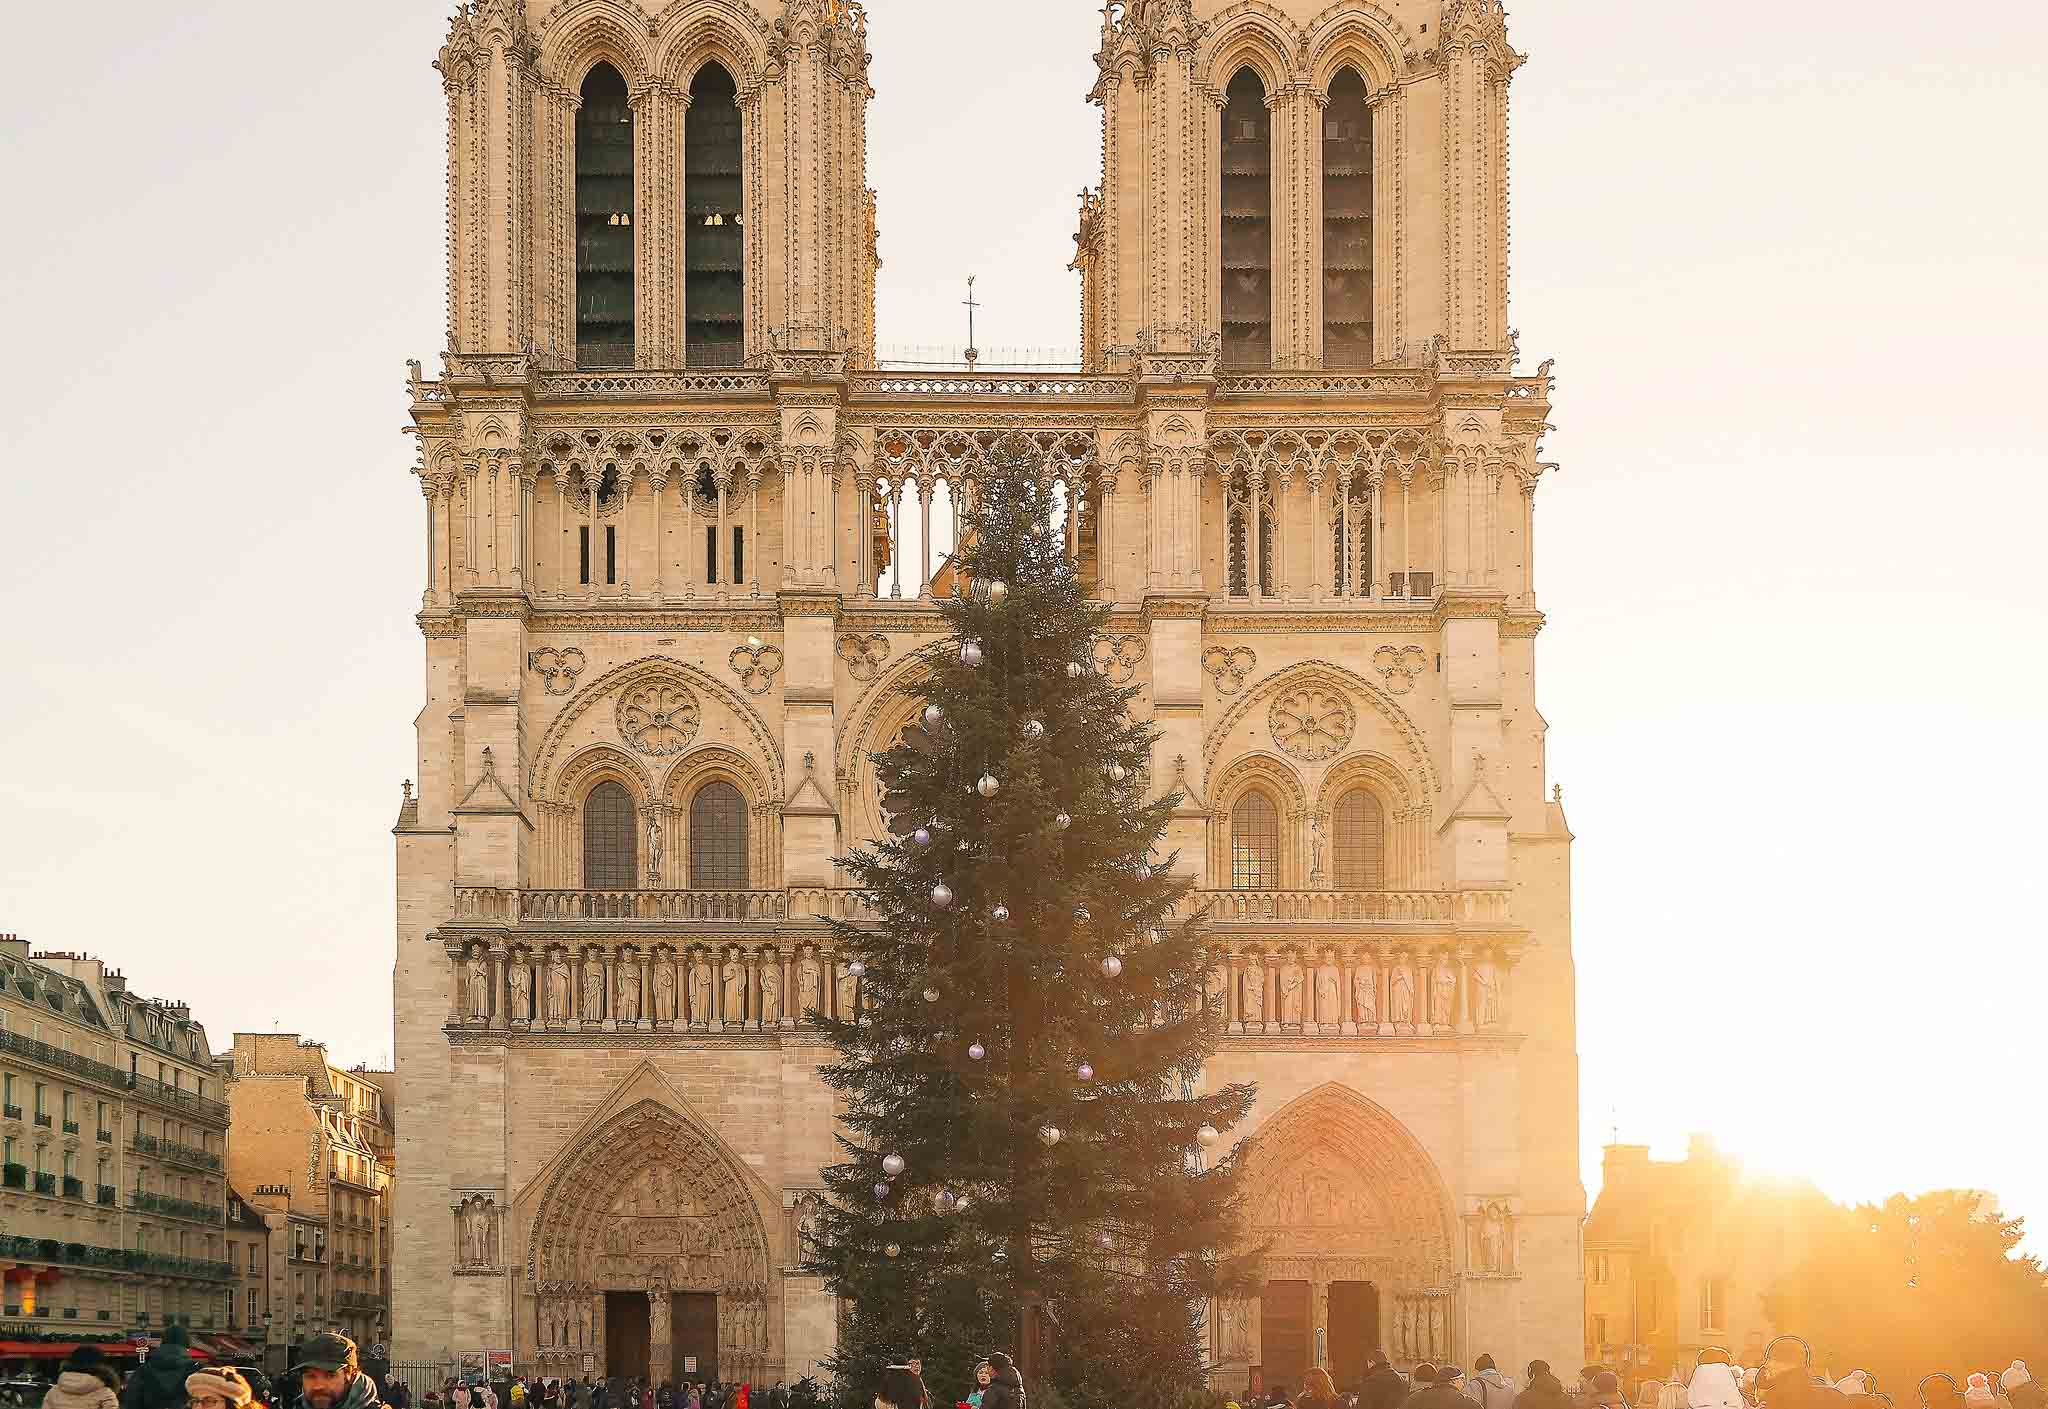 Paris in a week itinerary: don't miss Notre Dame cathedral